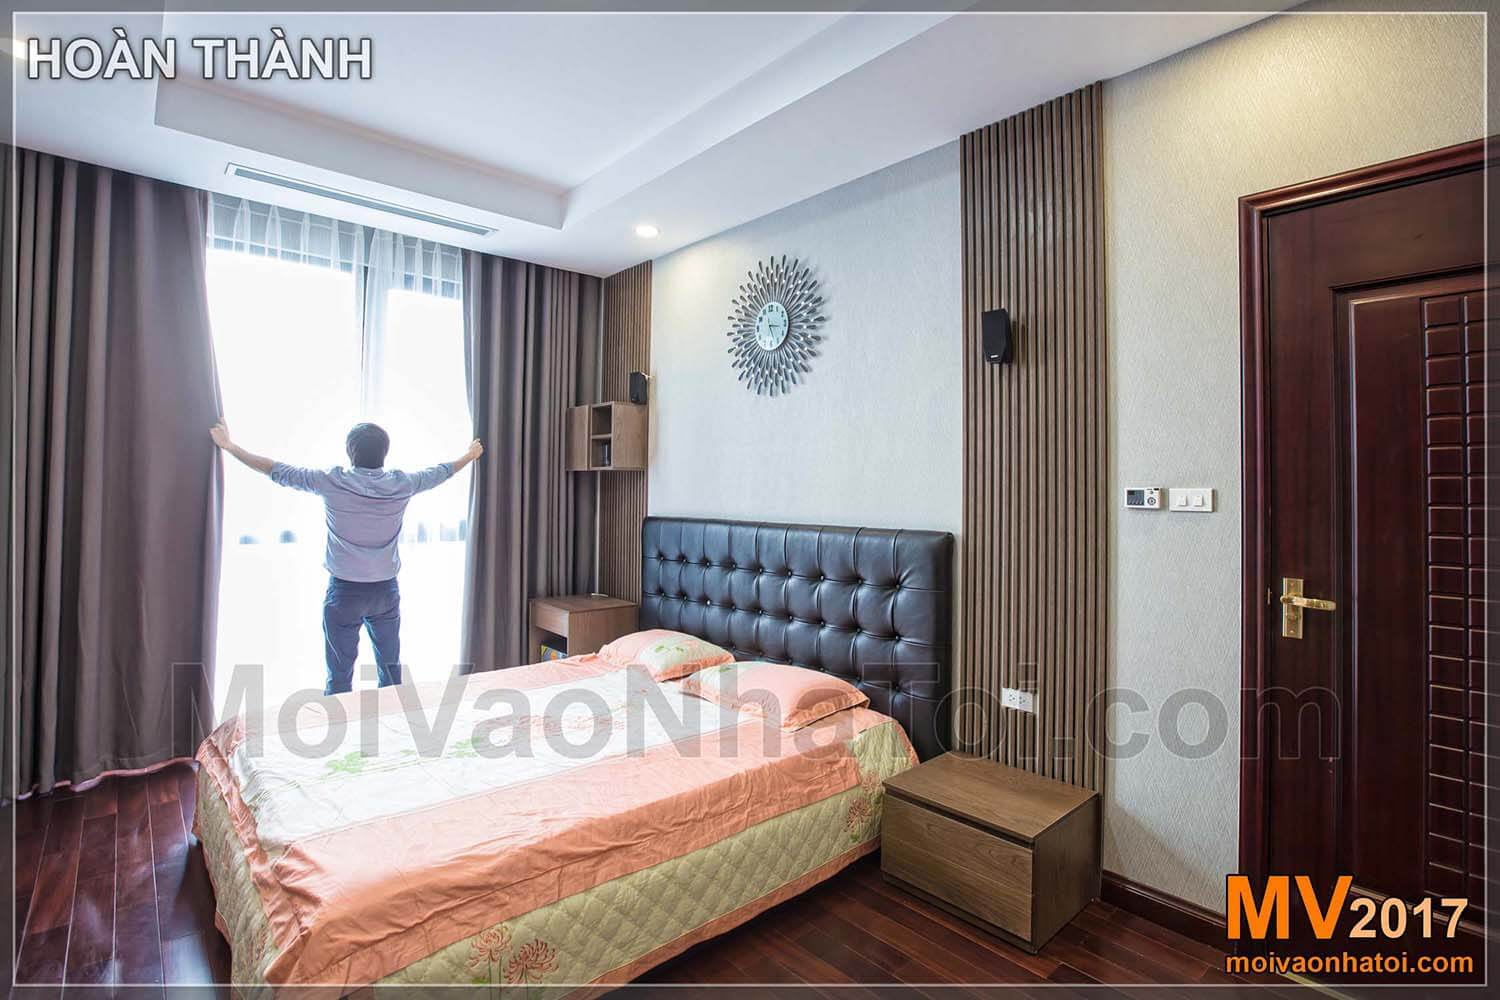 Design master bedroom apartment Royal City 100m2